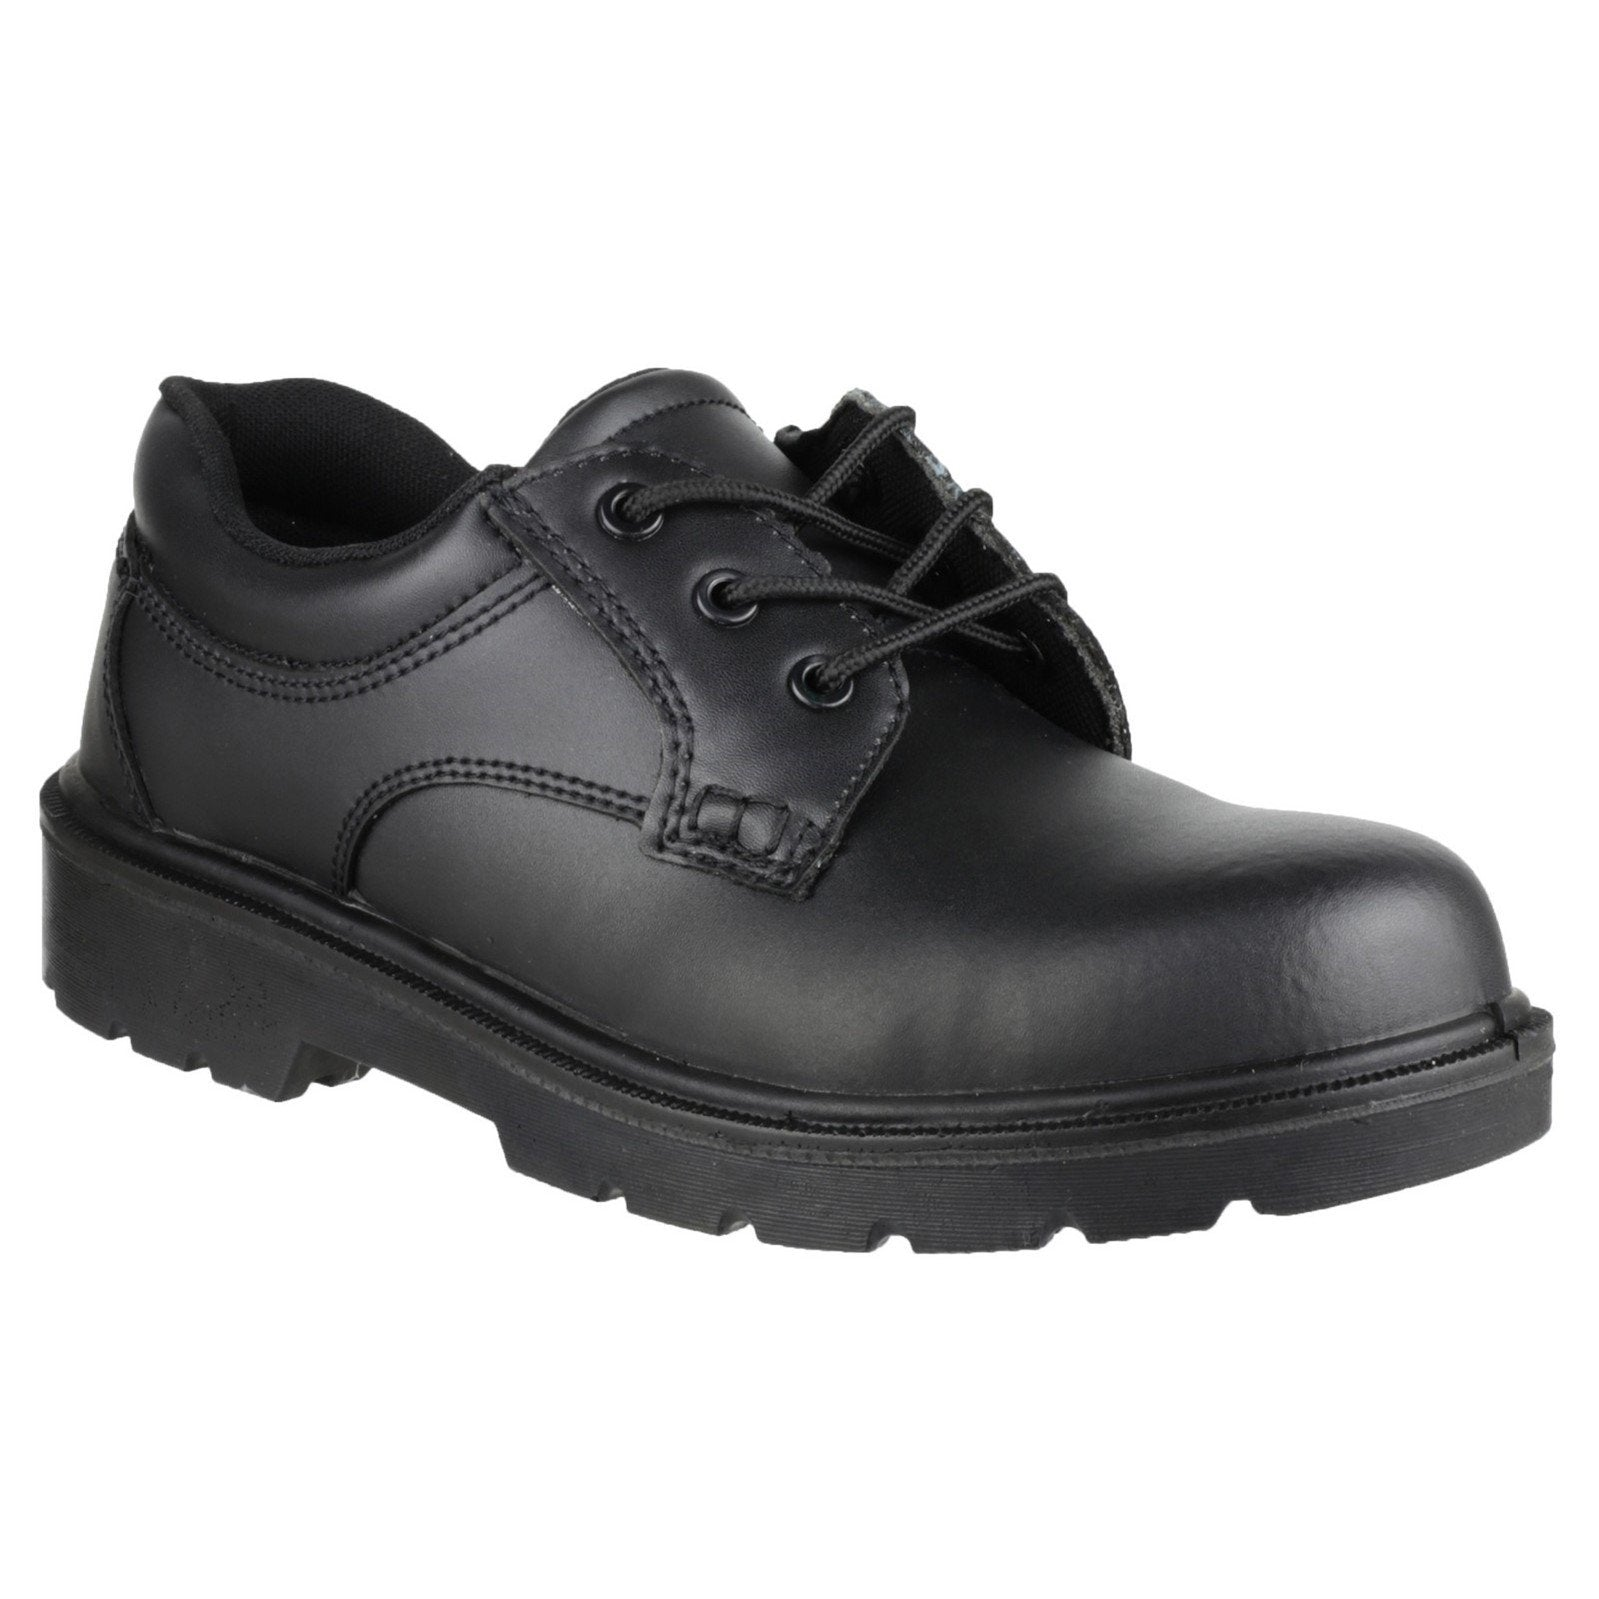 Amblers Lace Up Safety Shoes